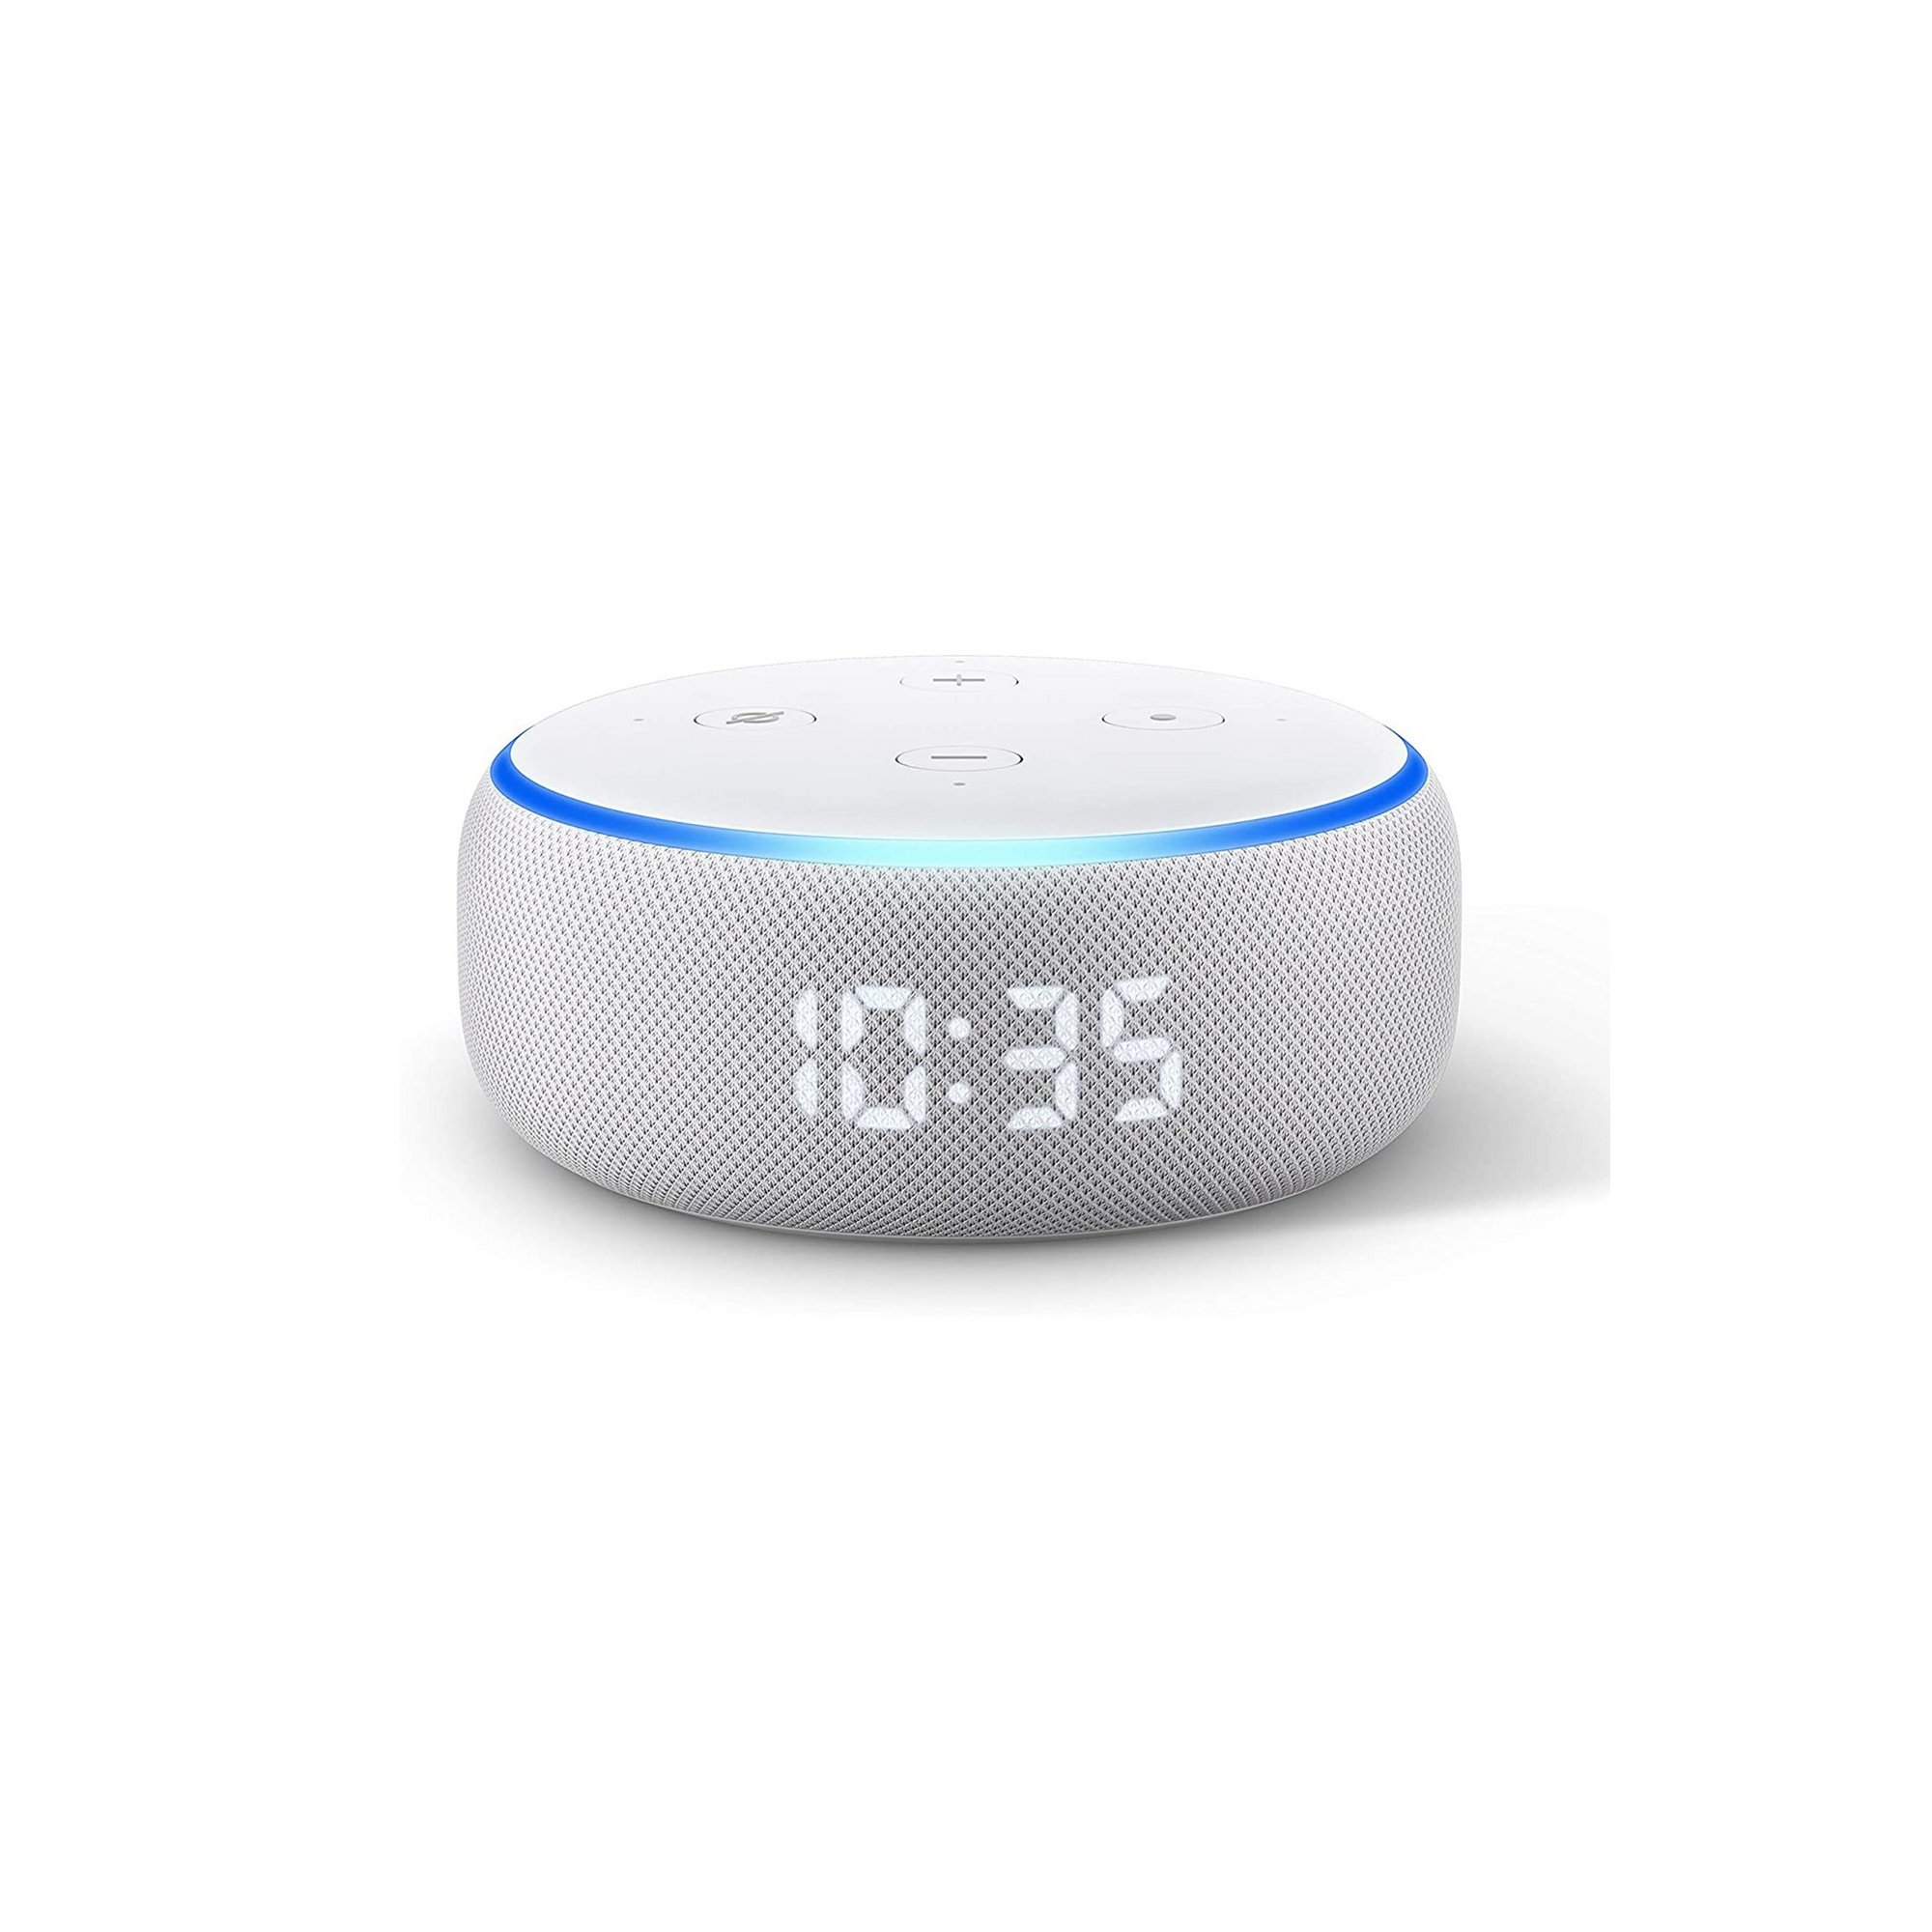 Image of Amazon Echo Dot 3rd Generation 2019 with Clock